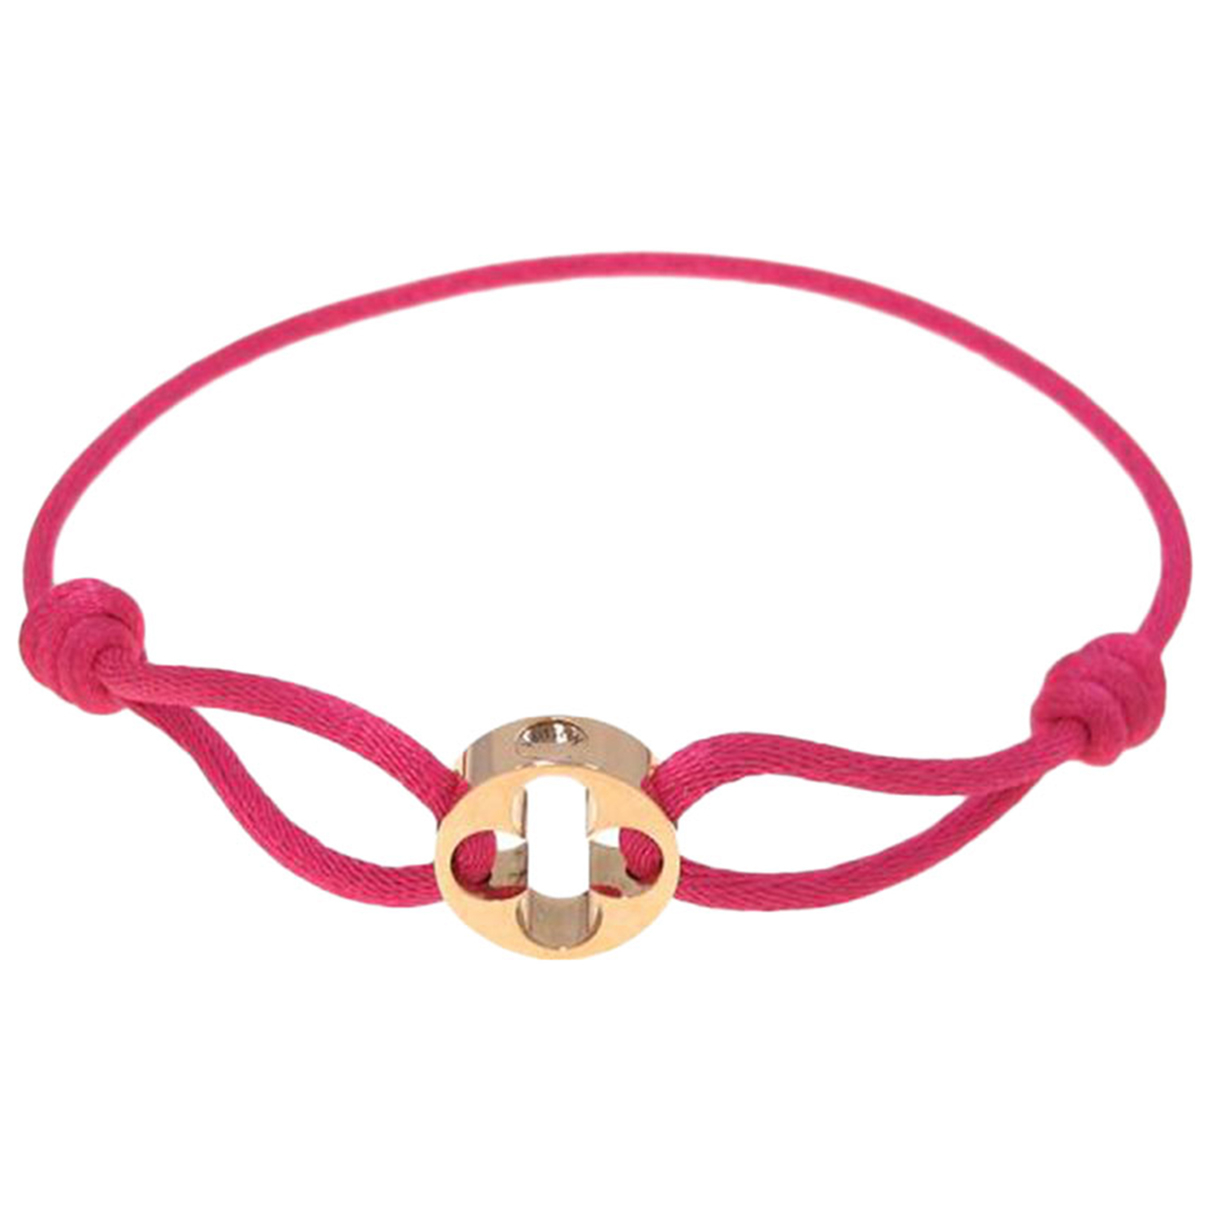 Louis Vuitton N Pink gold bracelet for Women N